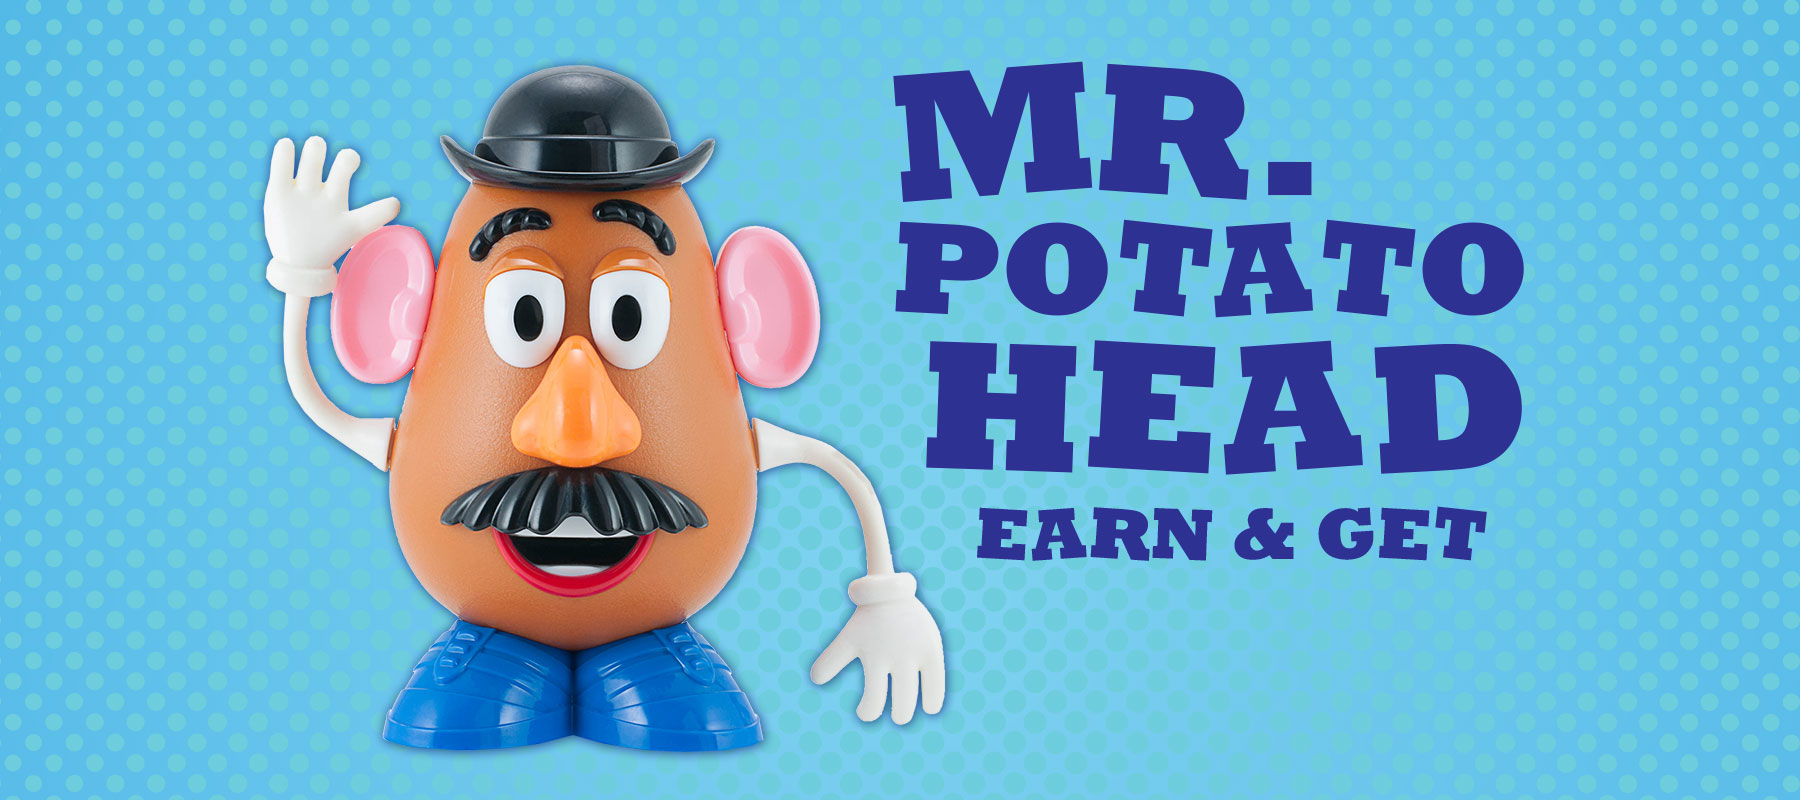 Mr. Potato Head Earn & Get